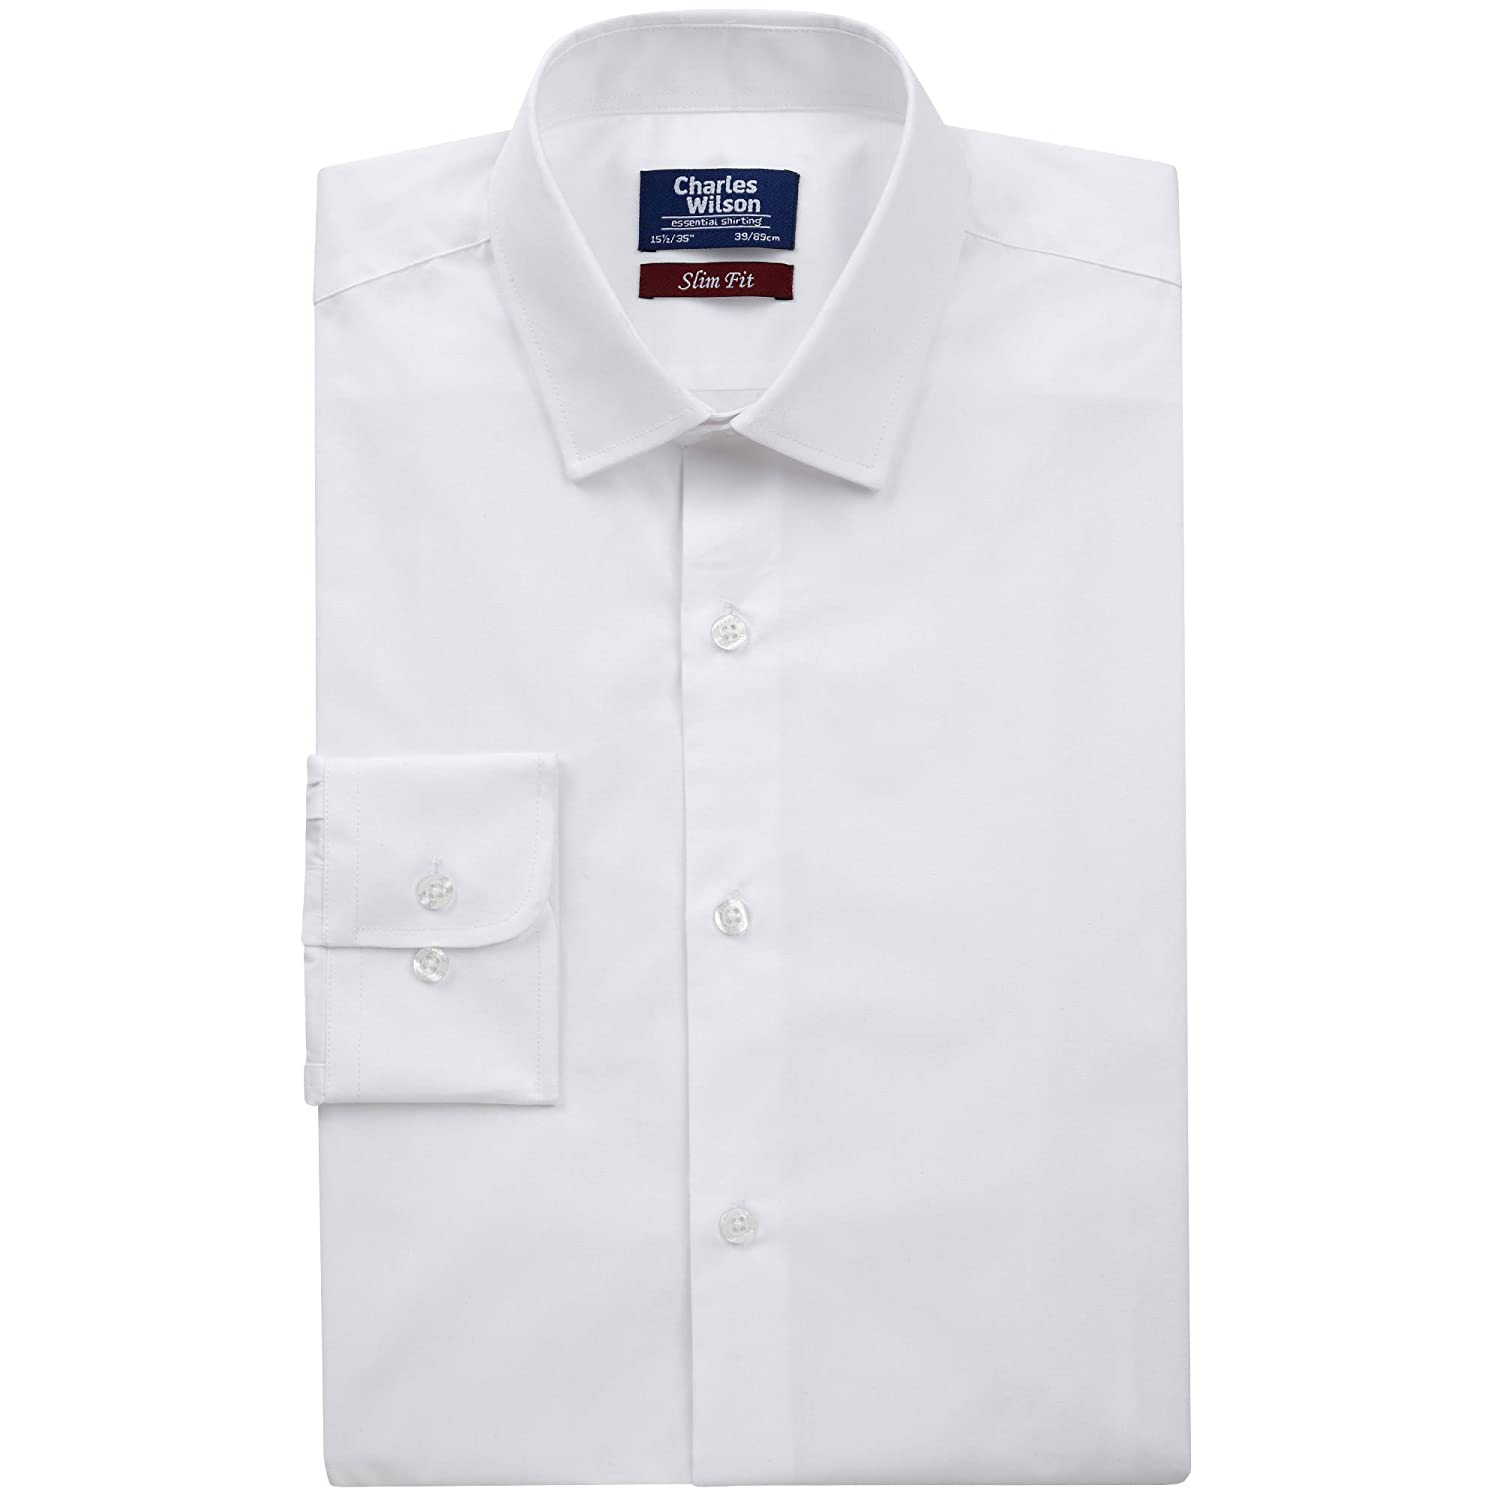 Charles Wilson Button Cuff Formal Shirt